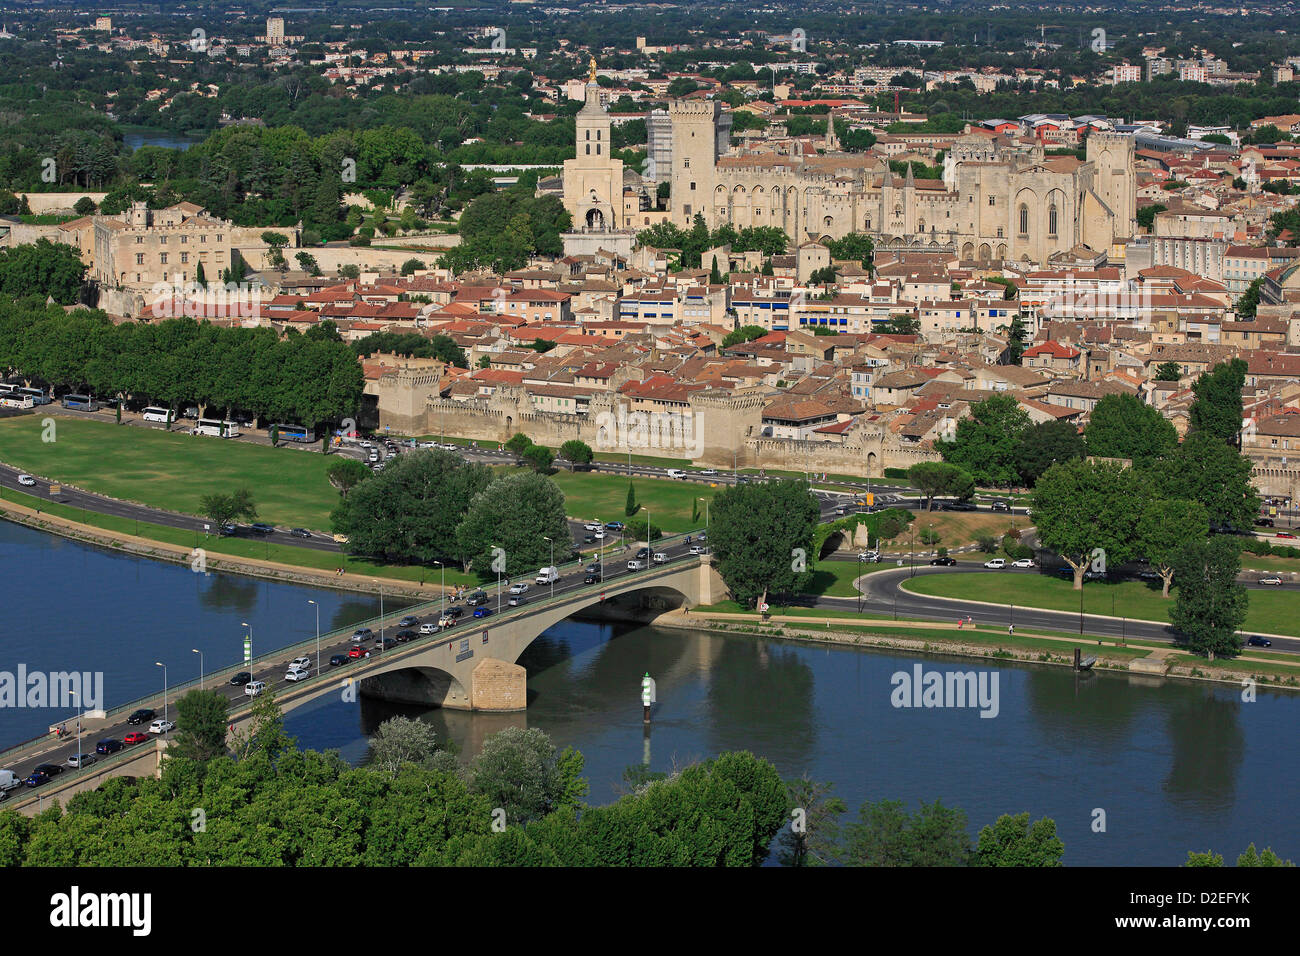 avignon aerial view stockfotos avignon aerial view bilder alamy. Black Bedroom Furniture Sets. Home Design Ideas